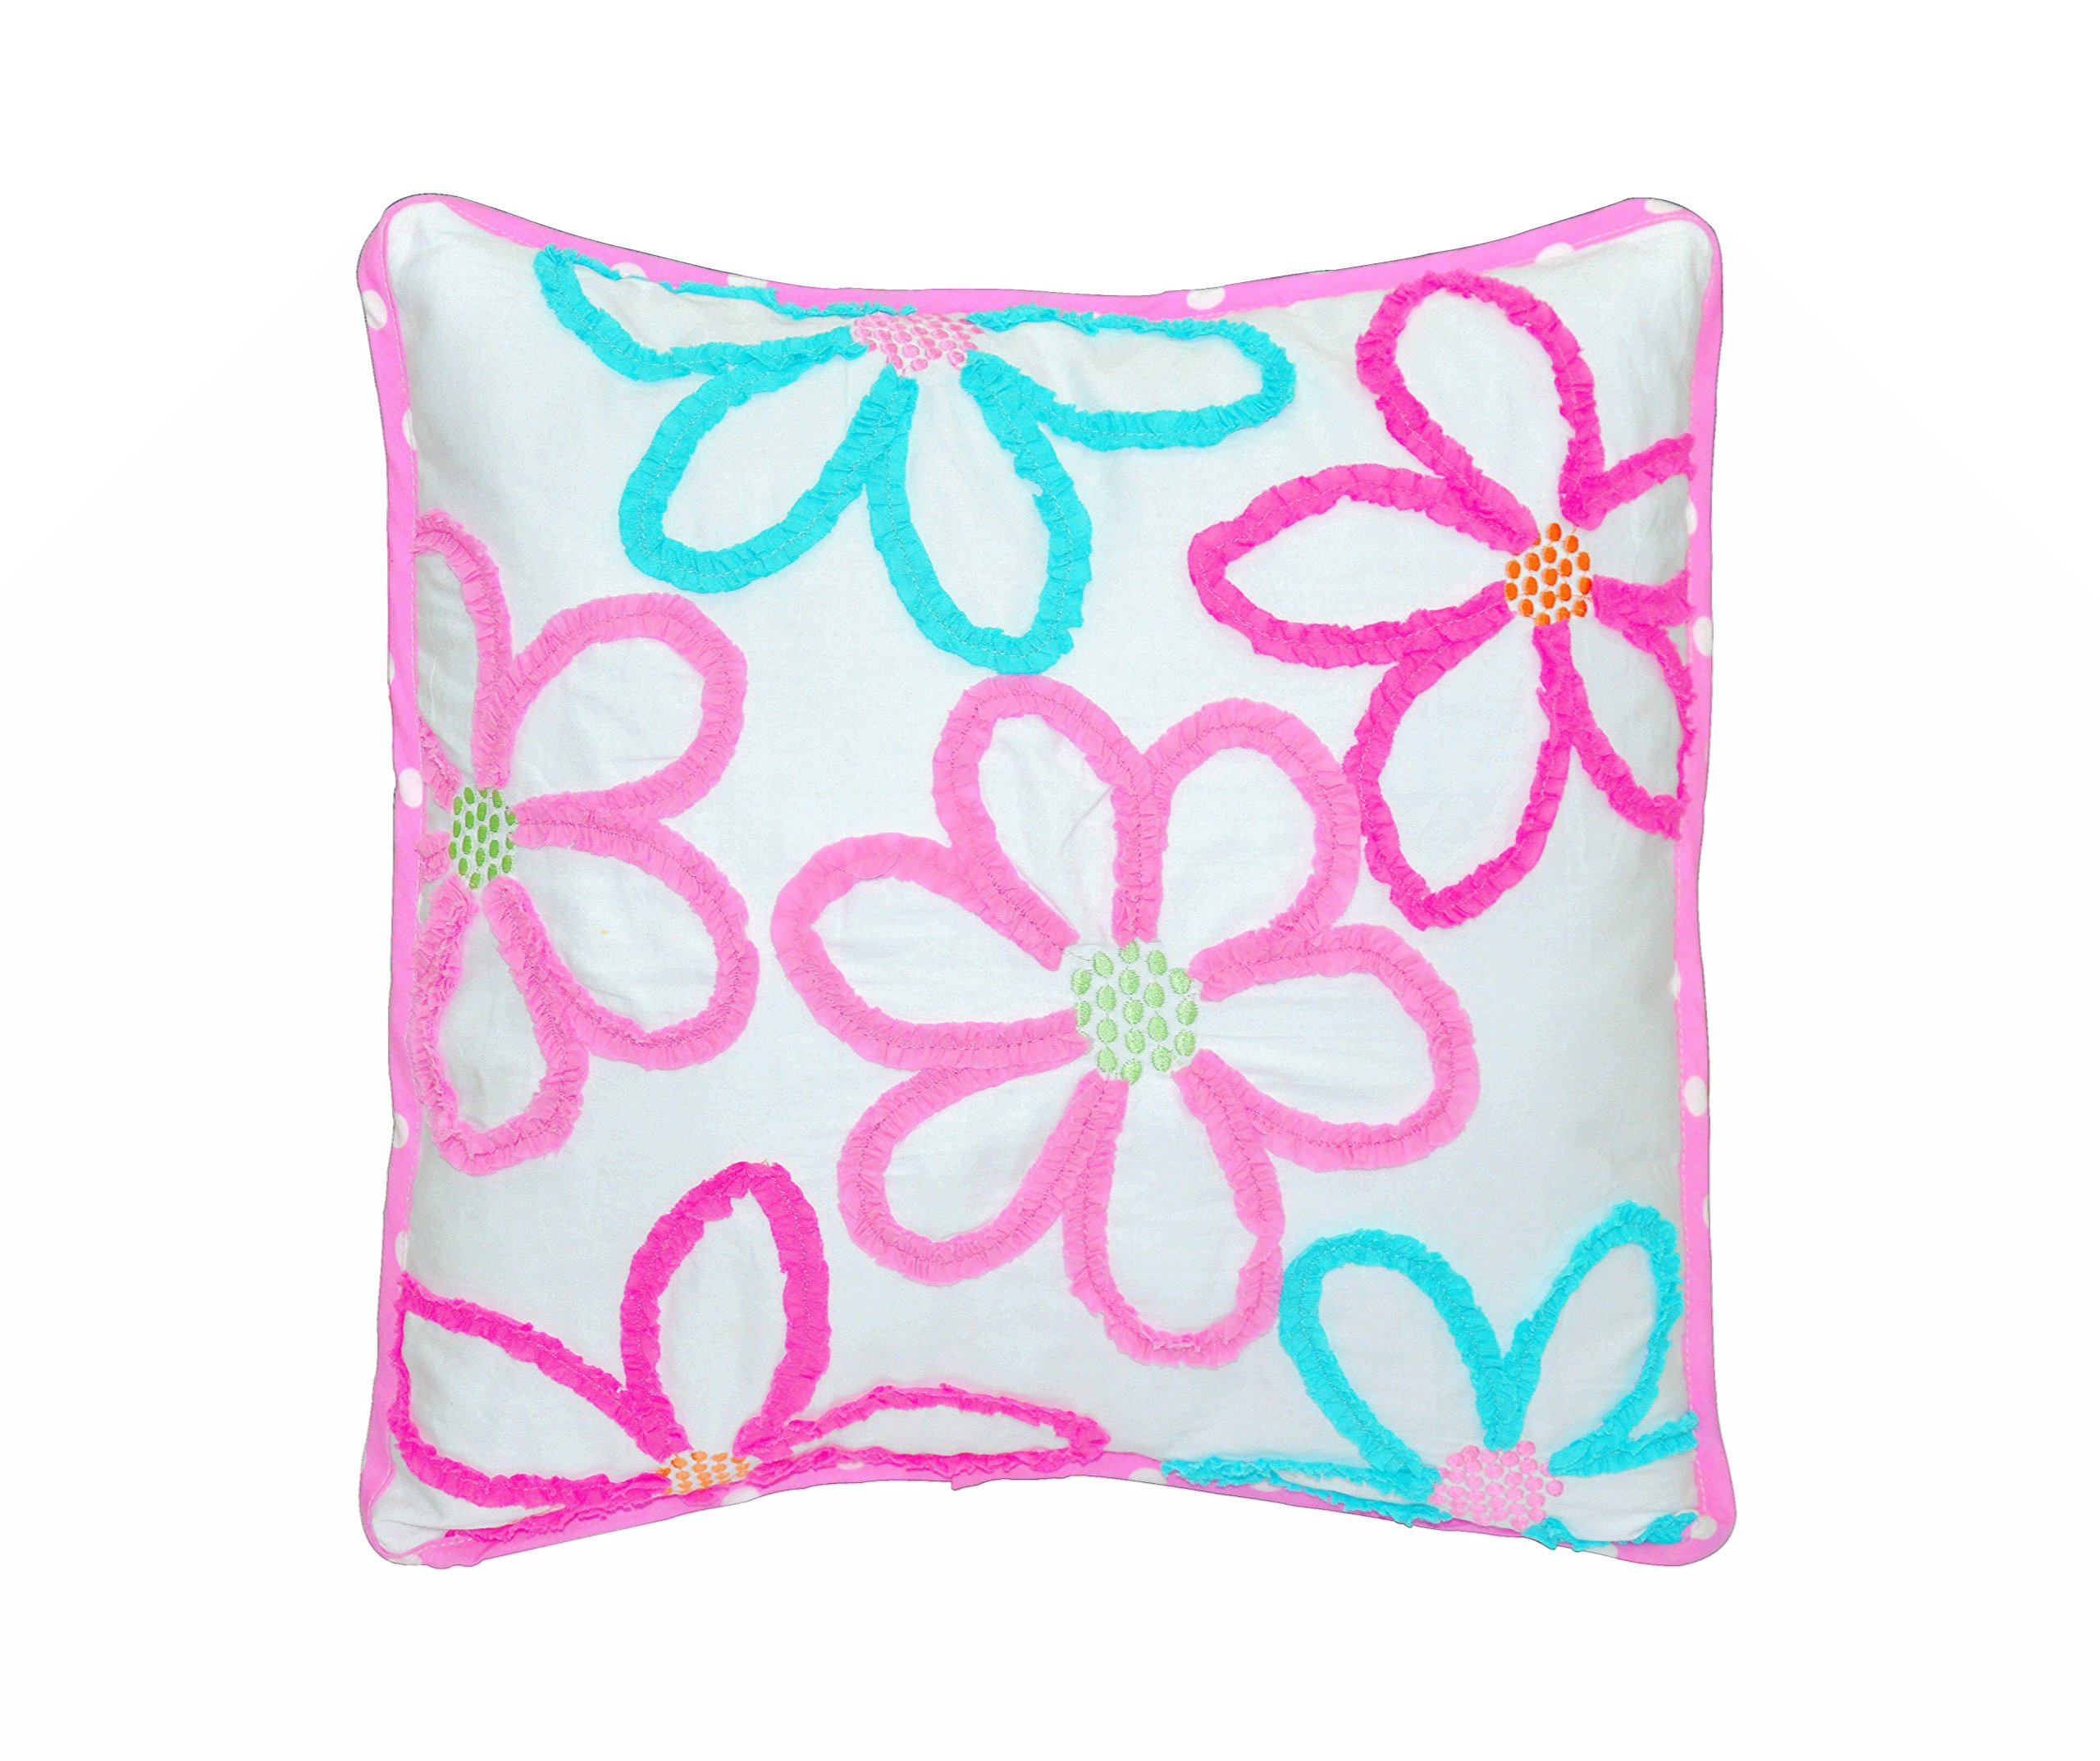 Cozy Line Home Fashions Mariah Pink 3D Floral Decorative Pillow by Cozy Line Home Fashions